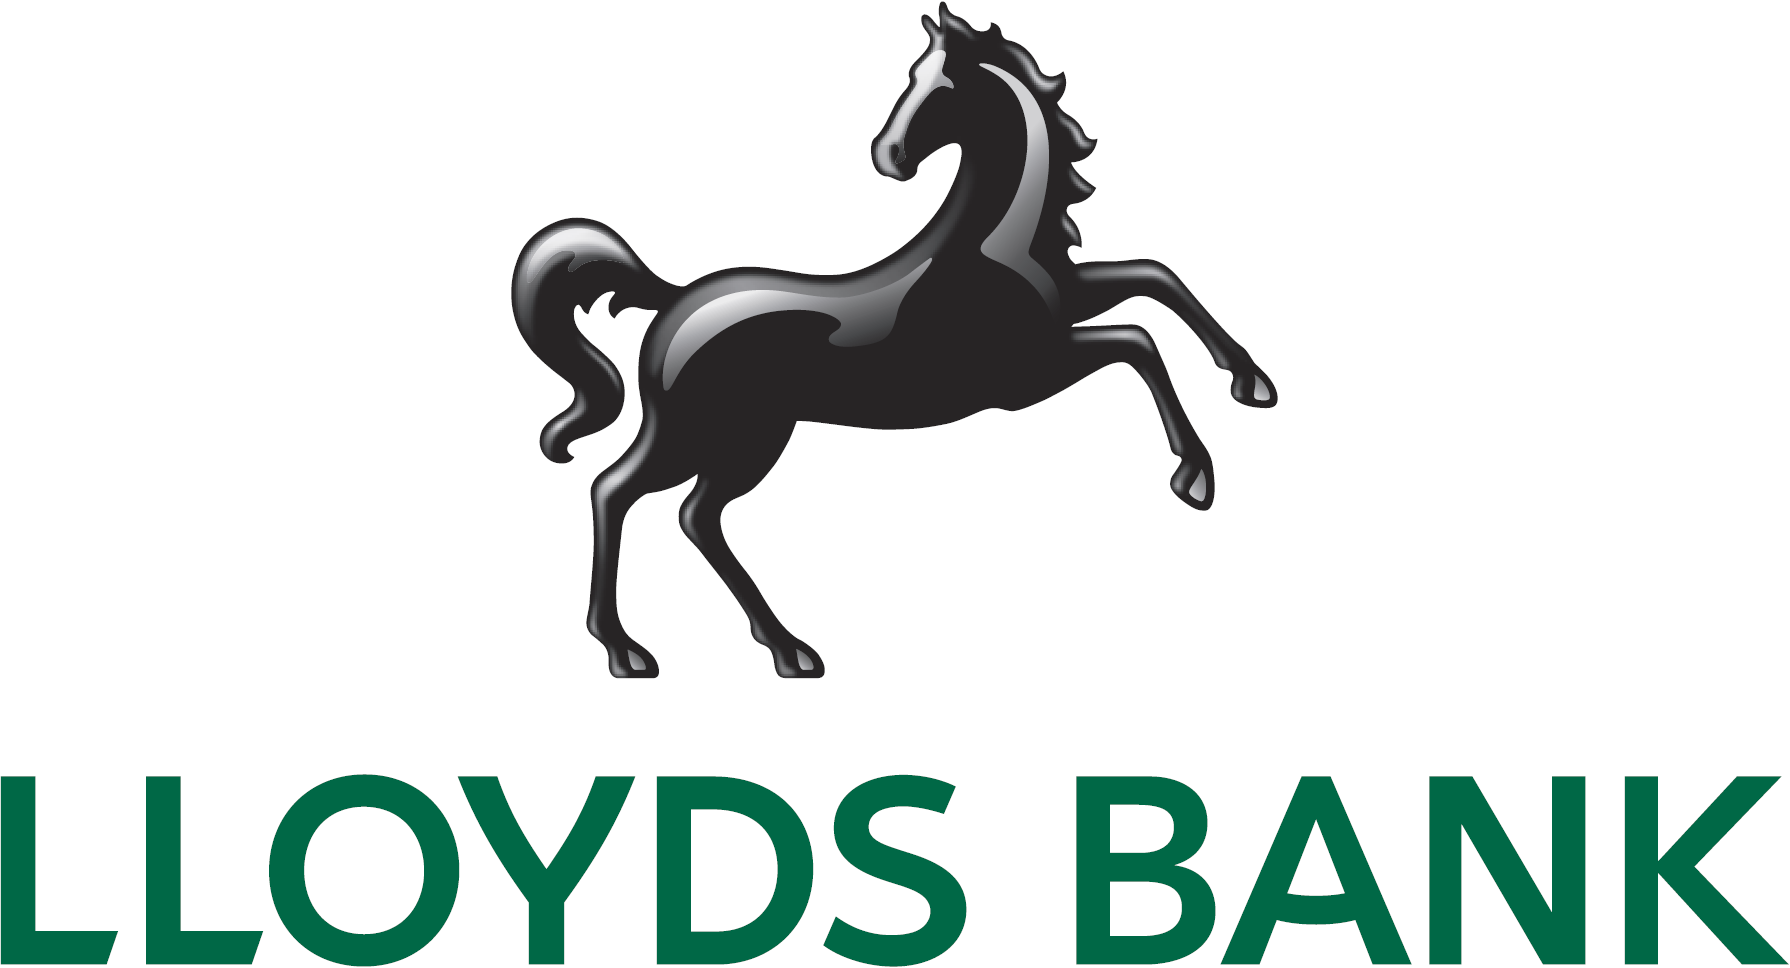 Lloyds Bank new logo.png